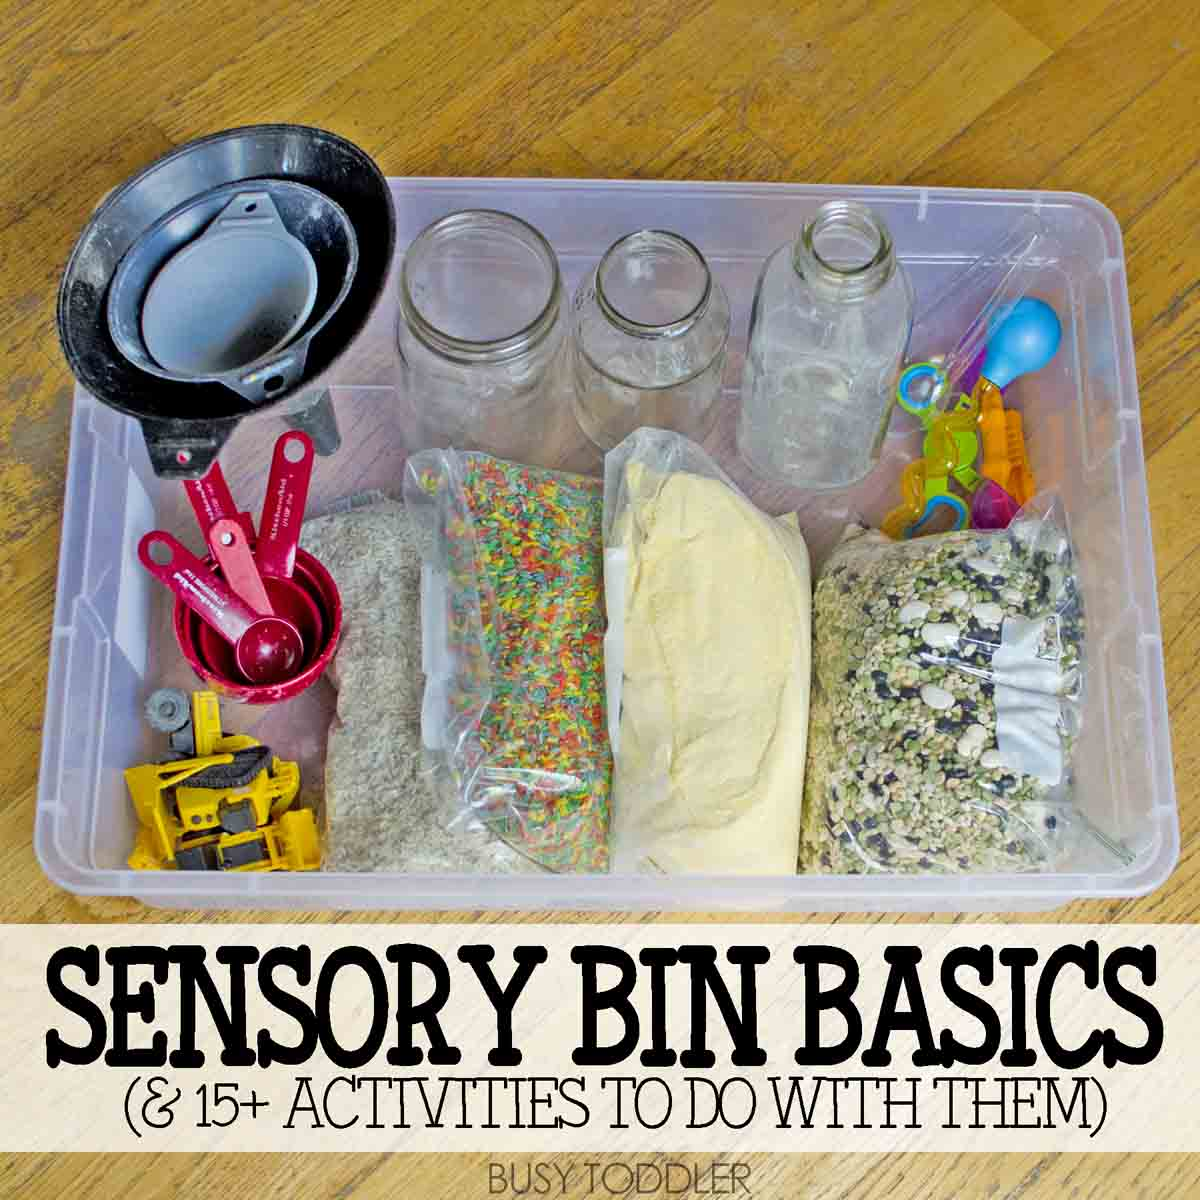 Sensory Bin Basics: What supplies you need to have on hand to create quick and easy sensory activities for toddlers and preschoolers